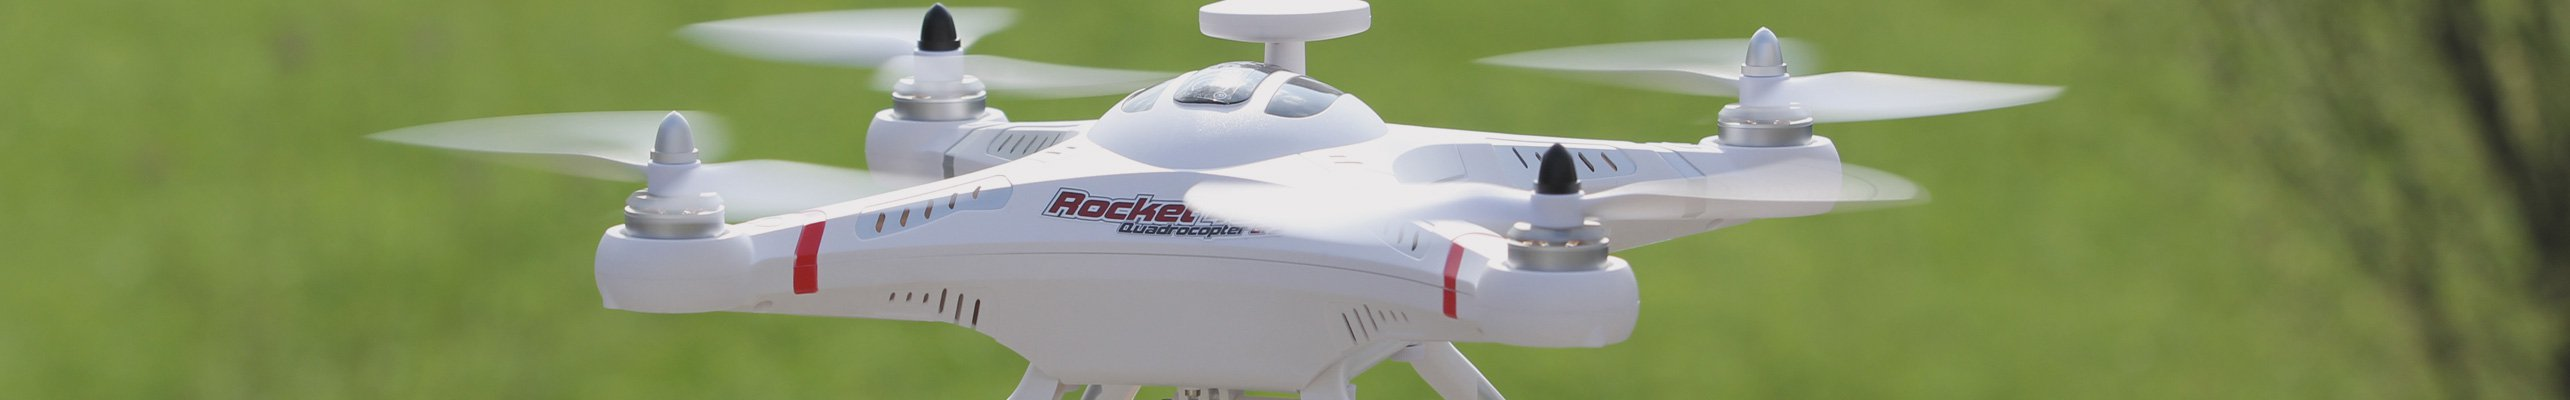 Rocket 400 GPS - RTF Quadrocopter